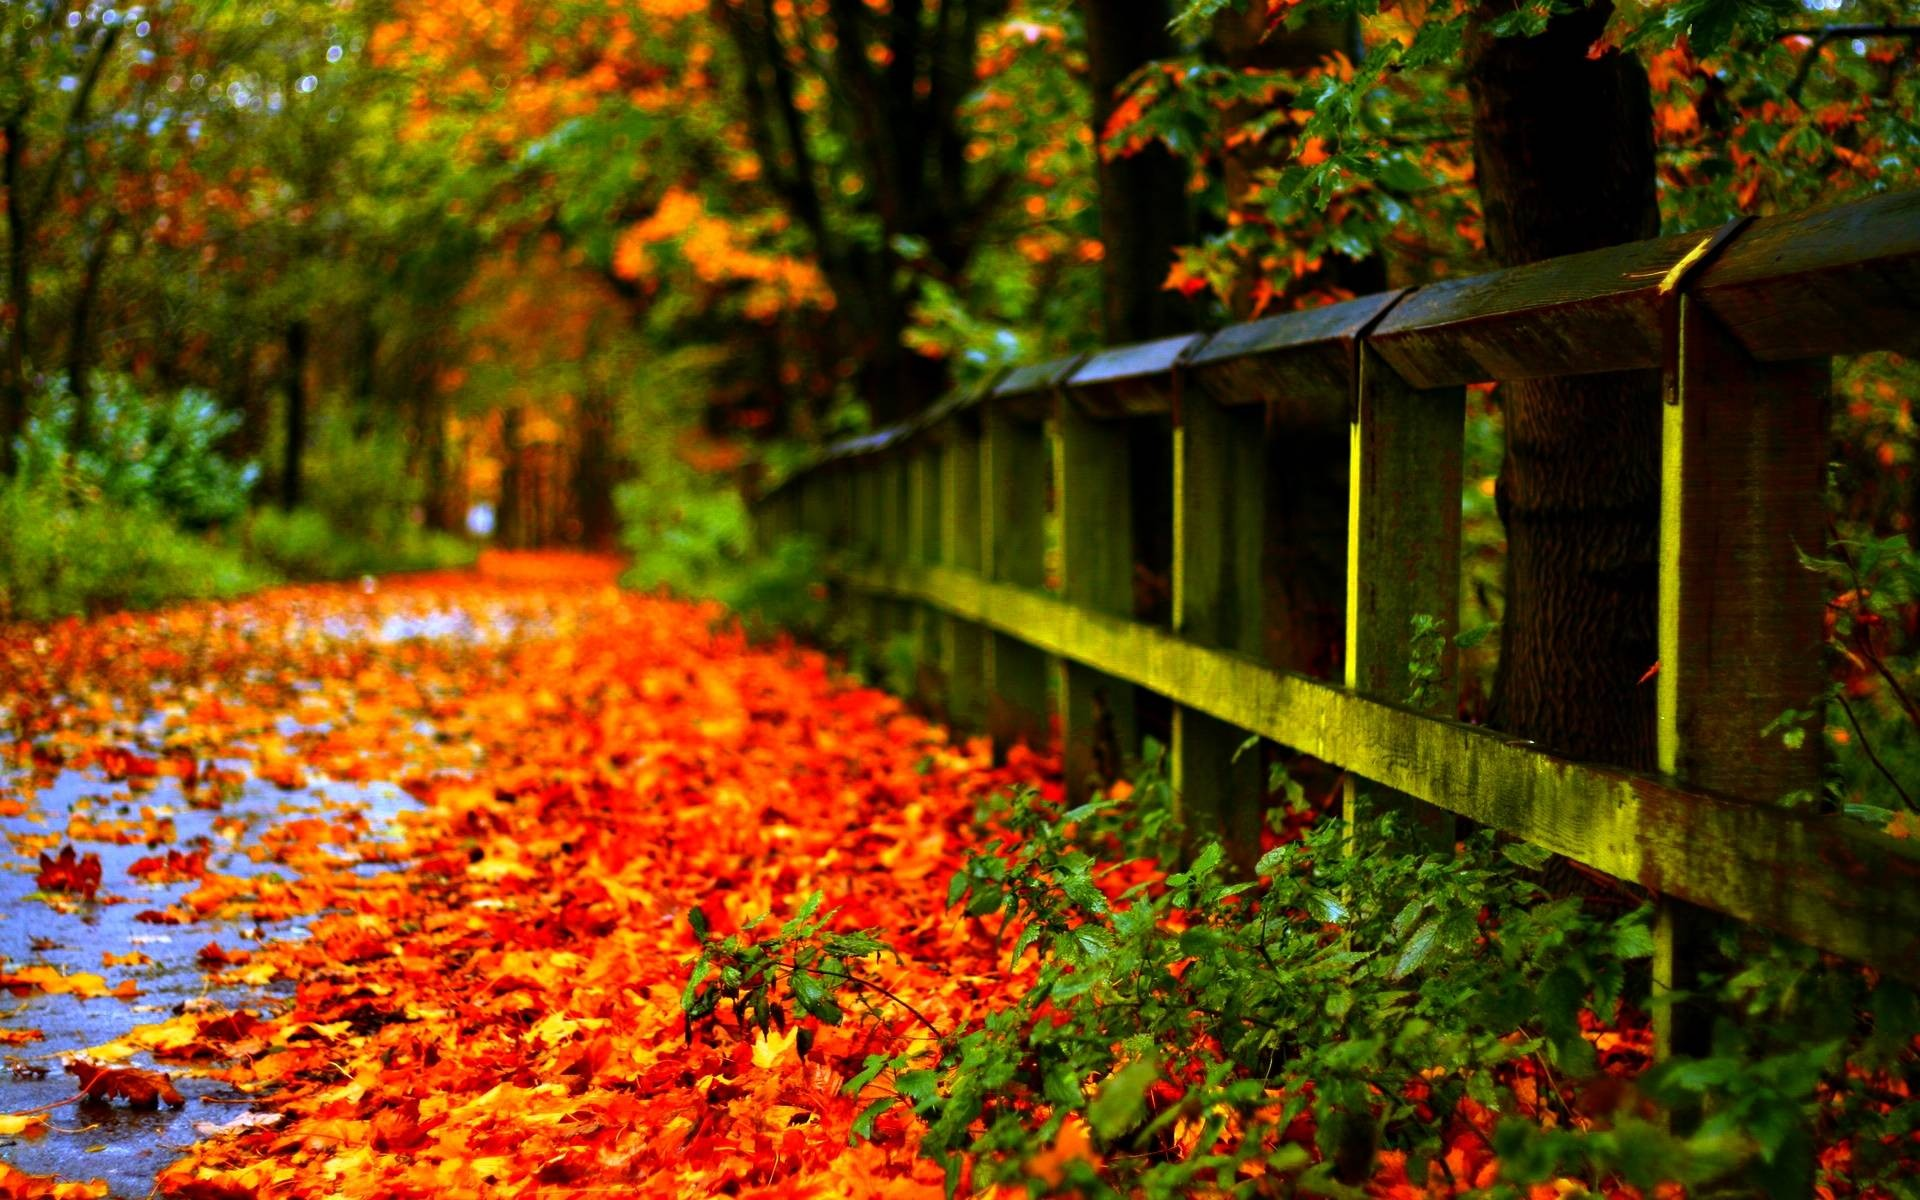 Fall Leaves Ipad Wallpaper Fall Leaves Wallpaper 183 ① Download Free Hd Backgrounds For